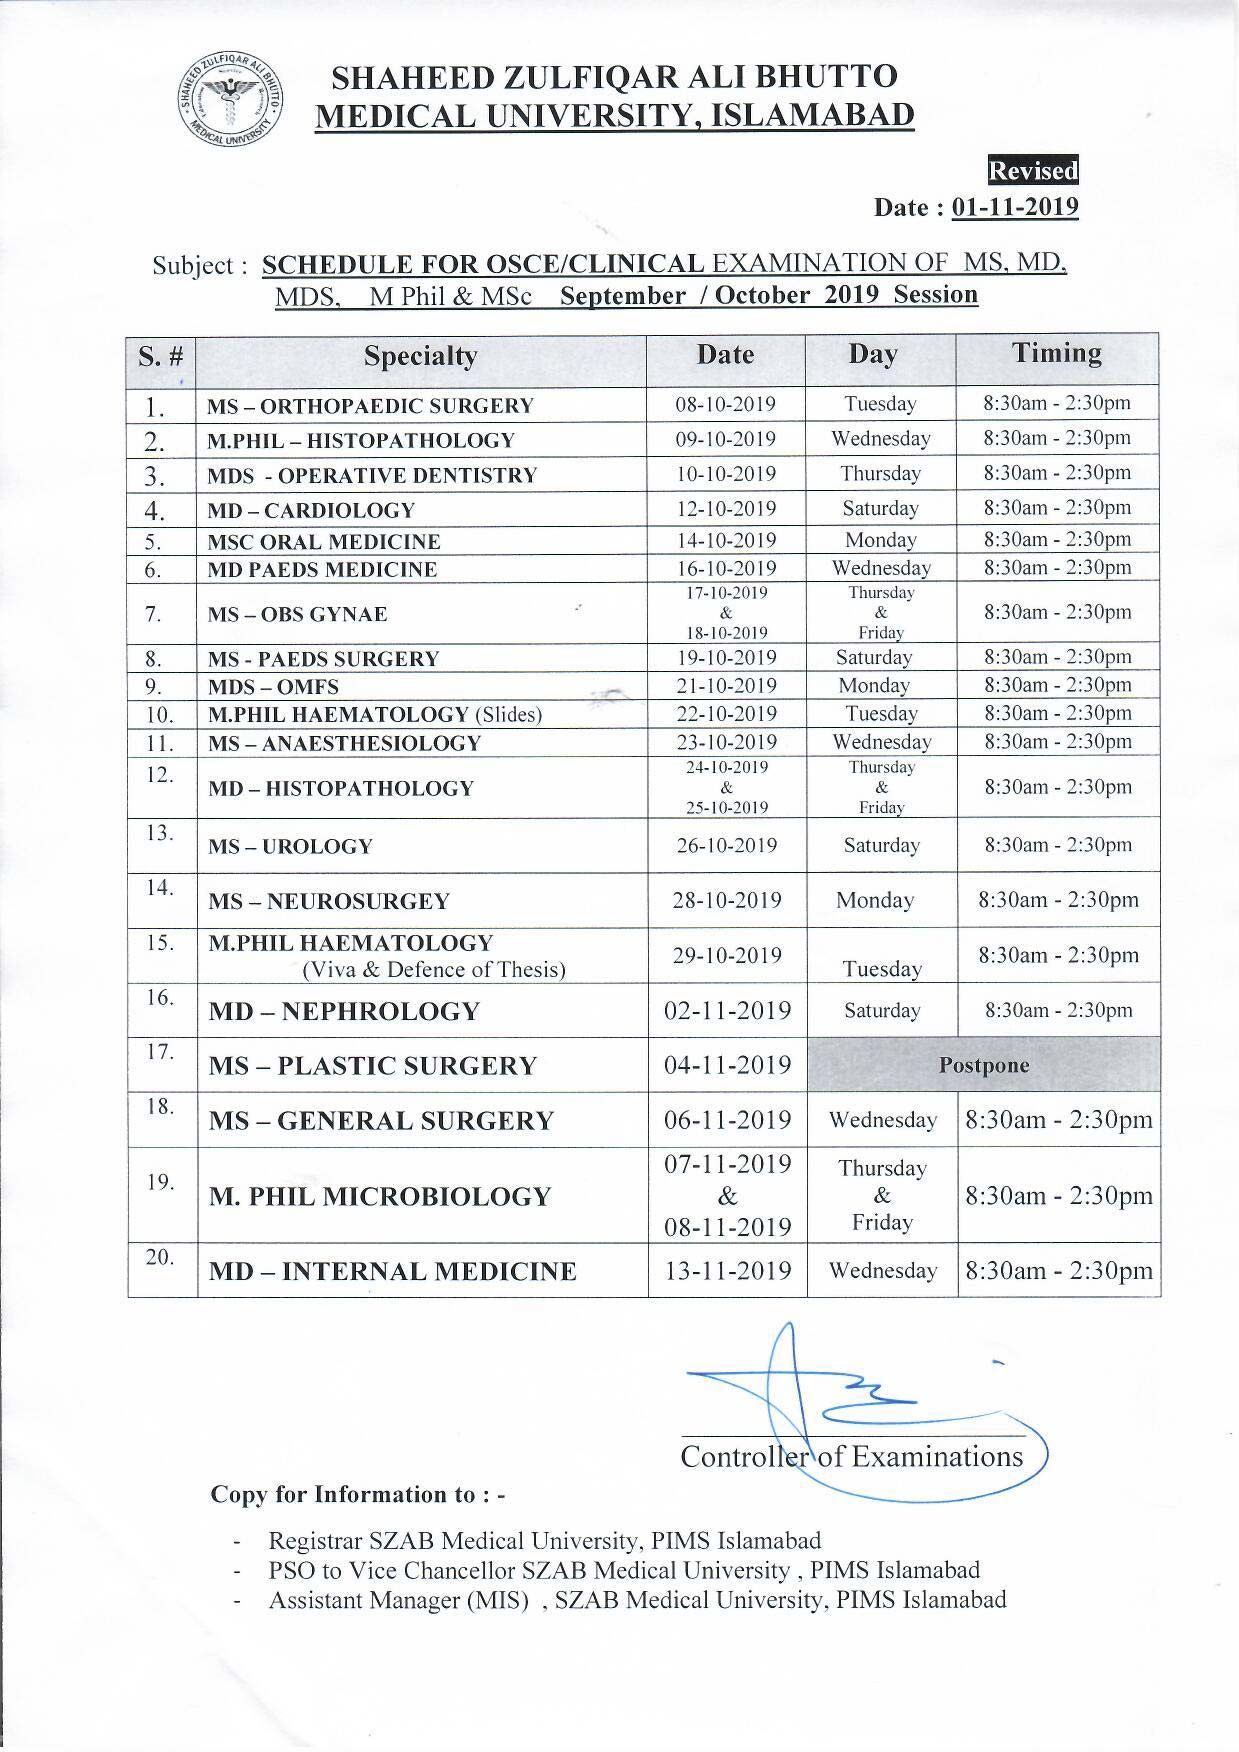 Revised - MS, MD, MDS, M.Phil and MSc Clinical Examination Schedule for September 2019 Session